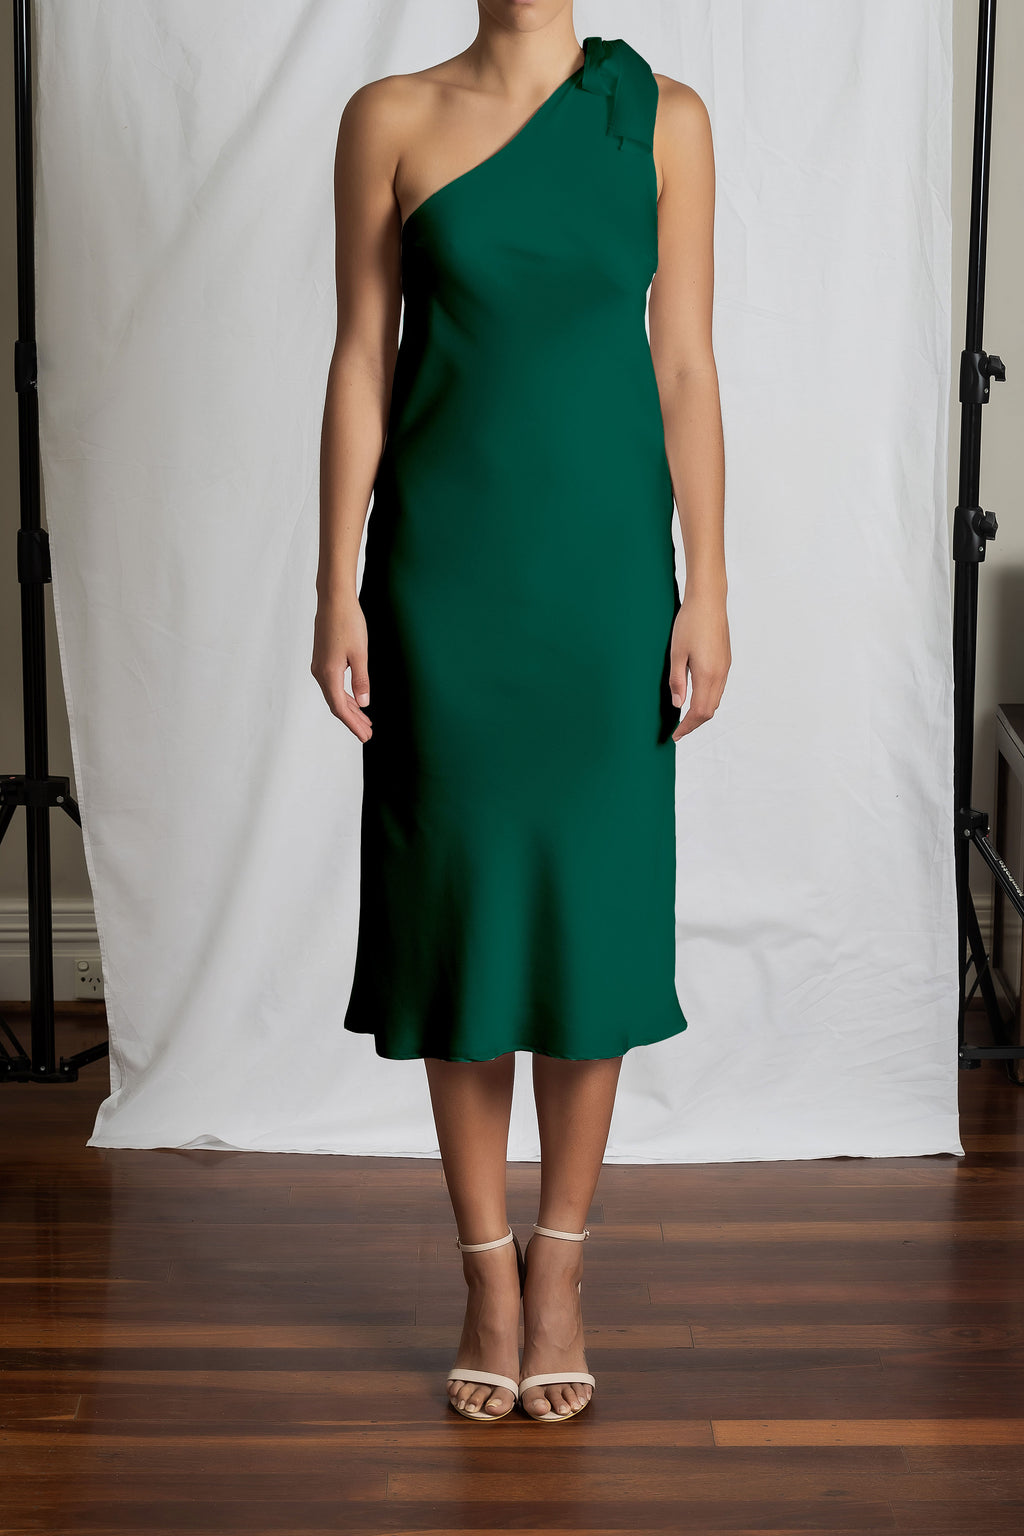 Azalea Dress - Emerald